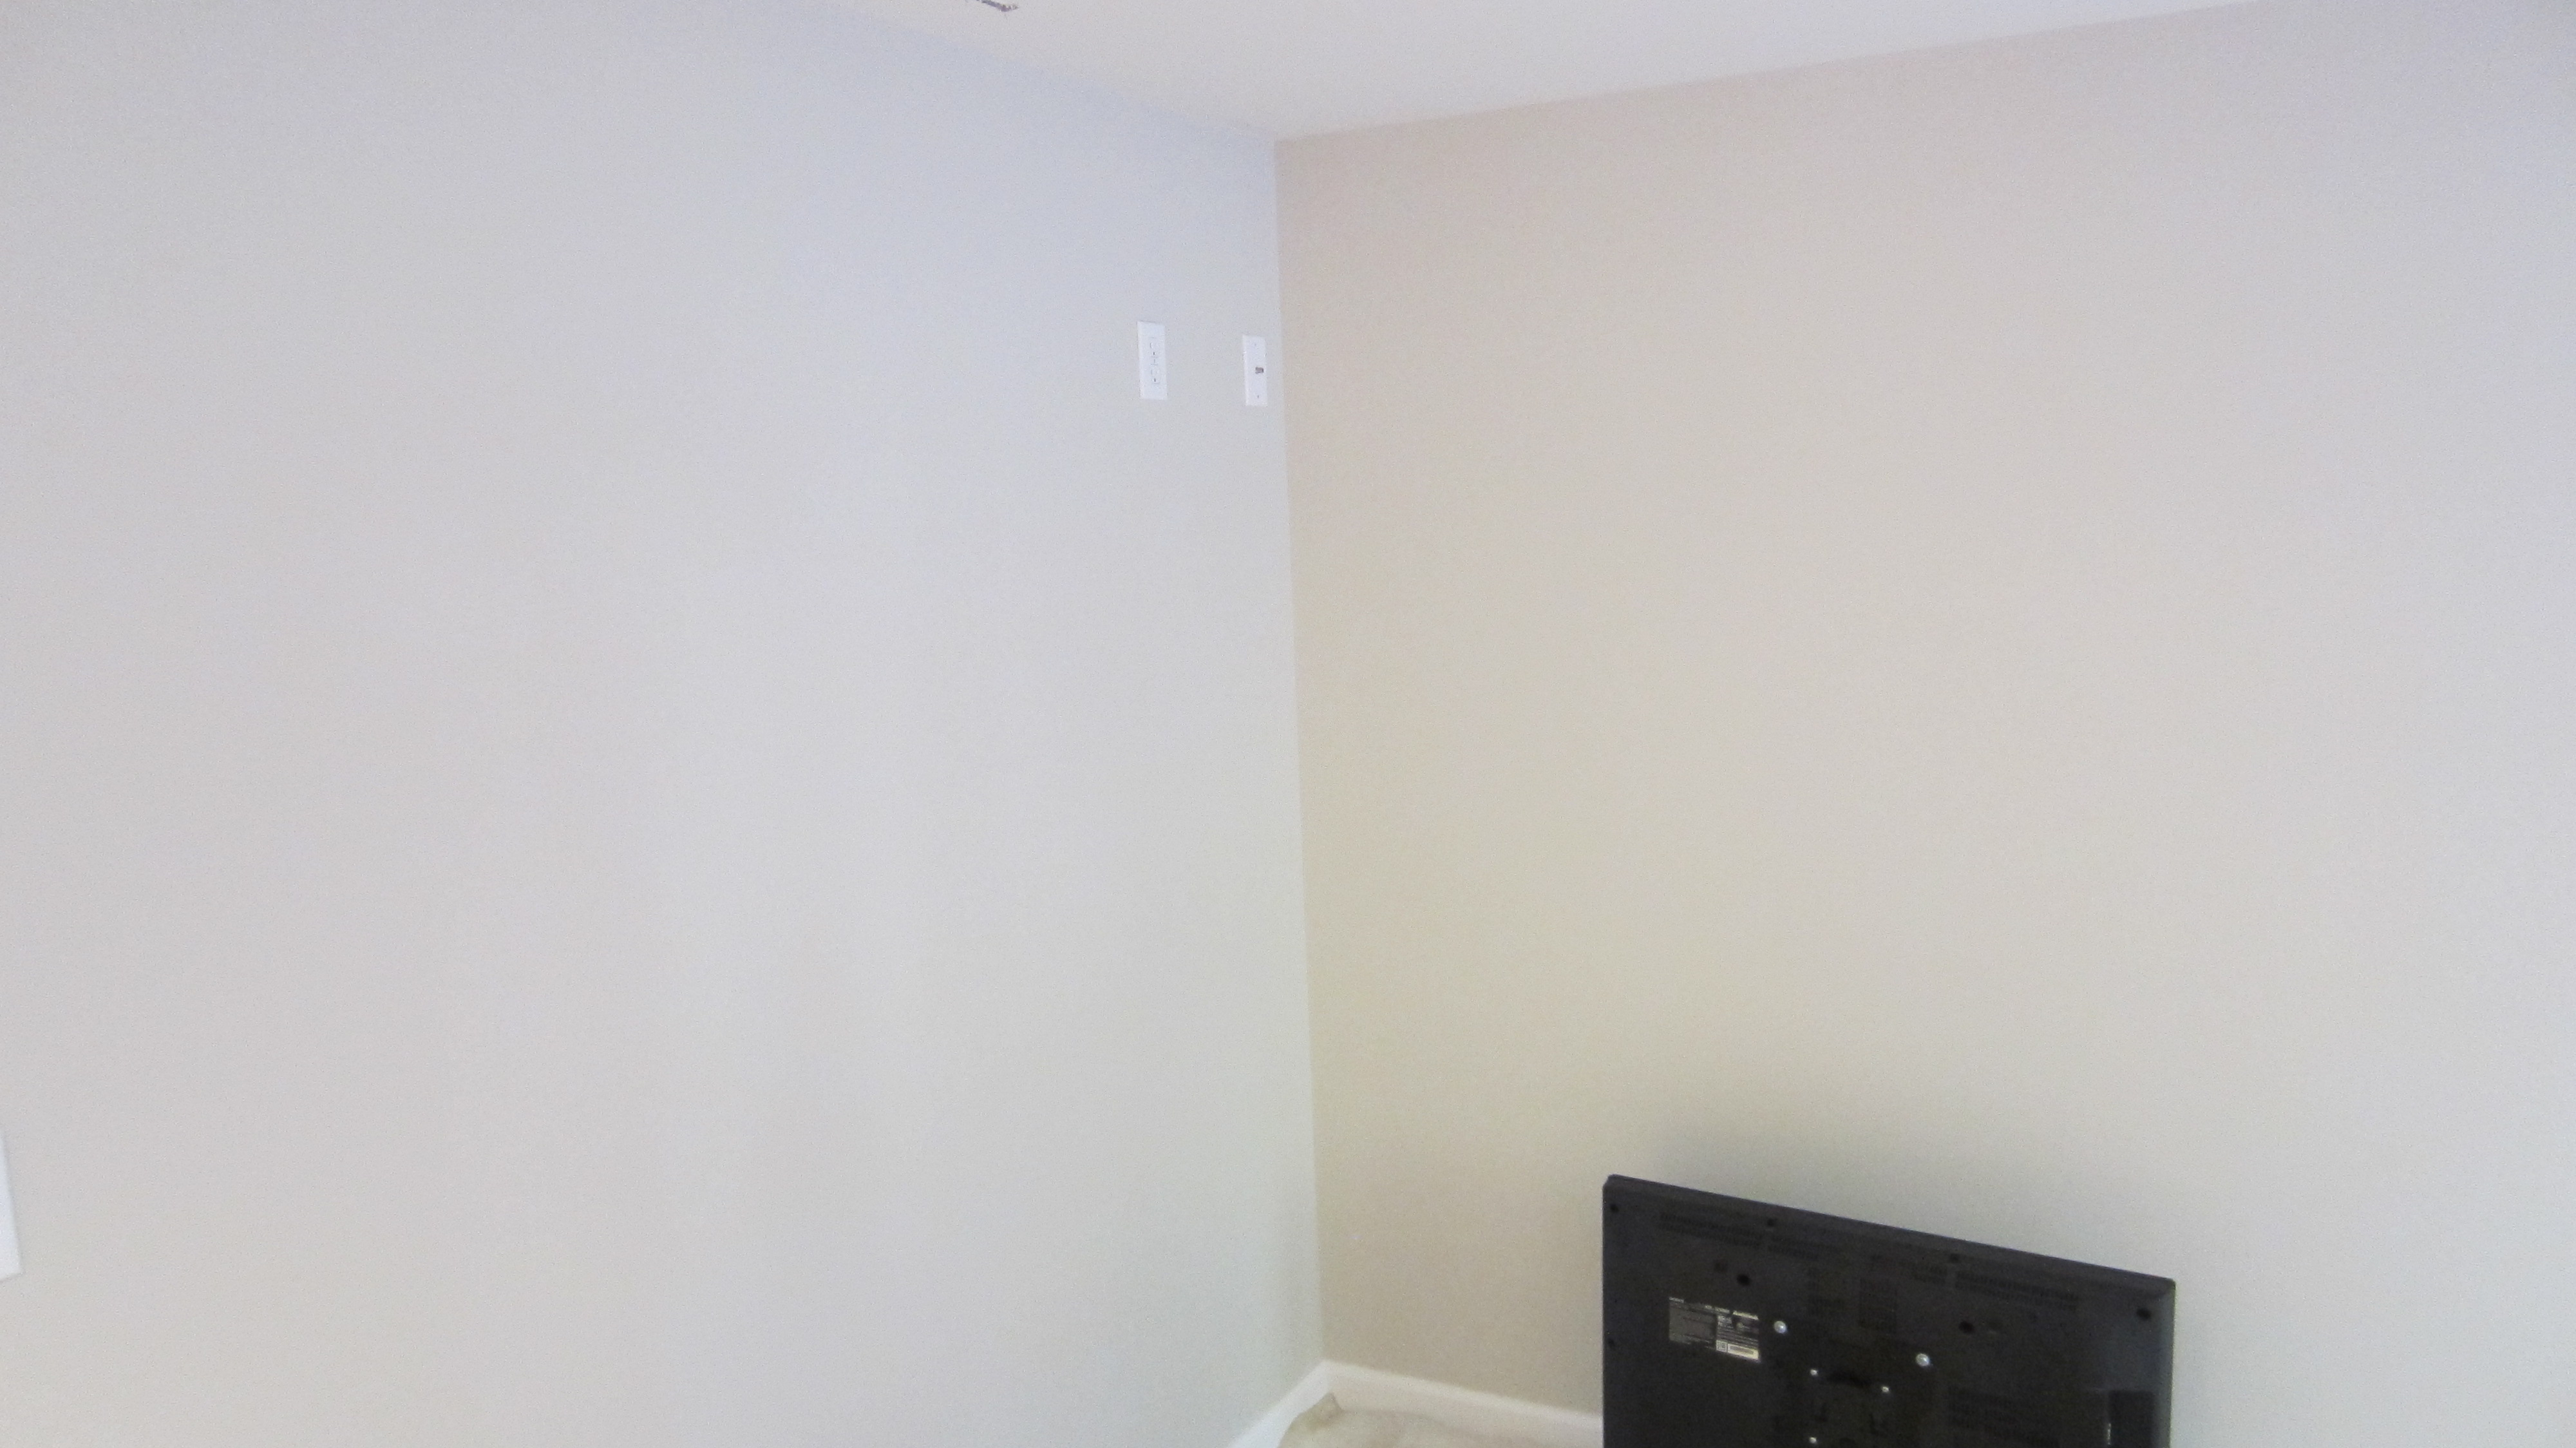 Wall Bedroom Norwalk Ct Mount Tv On Wall Home Theater Installation